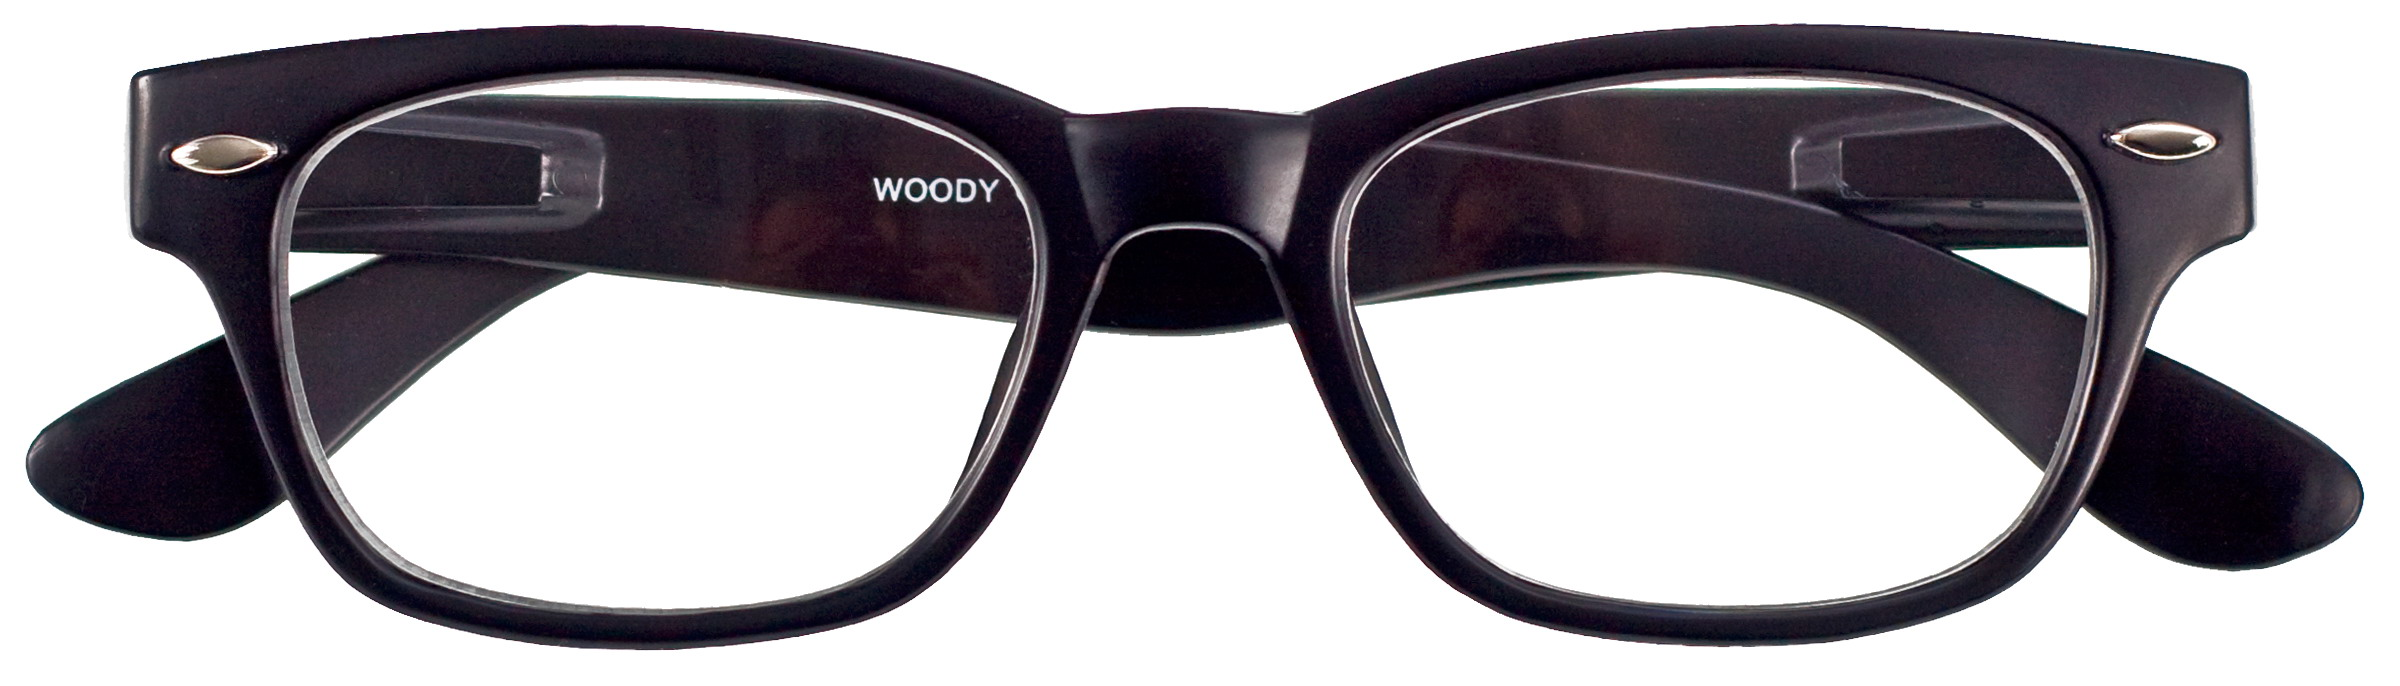 Woody Black Readers by I Need You Readers